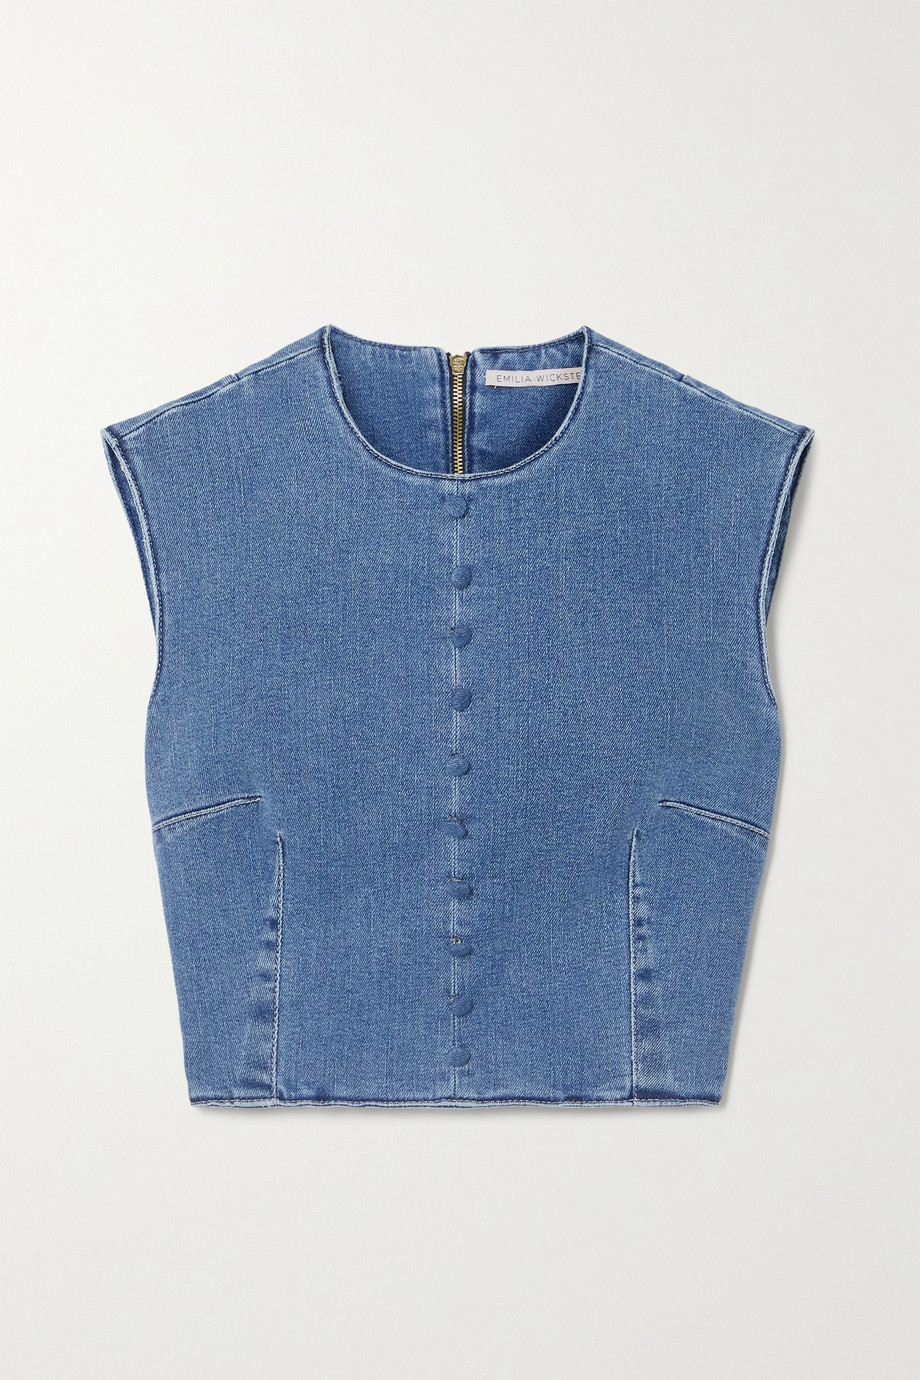 Emilia Wickstead Cilla cropped stretch-denim top